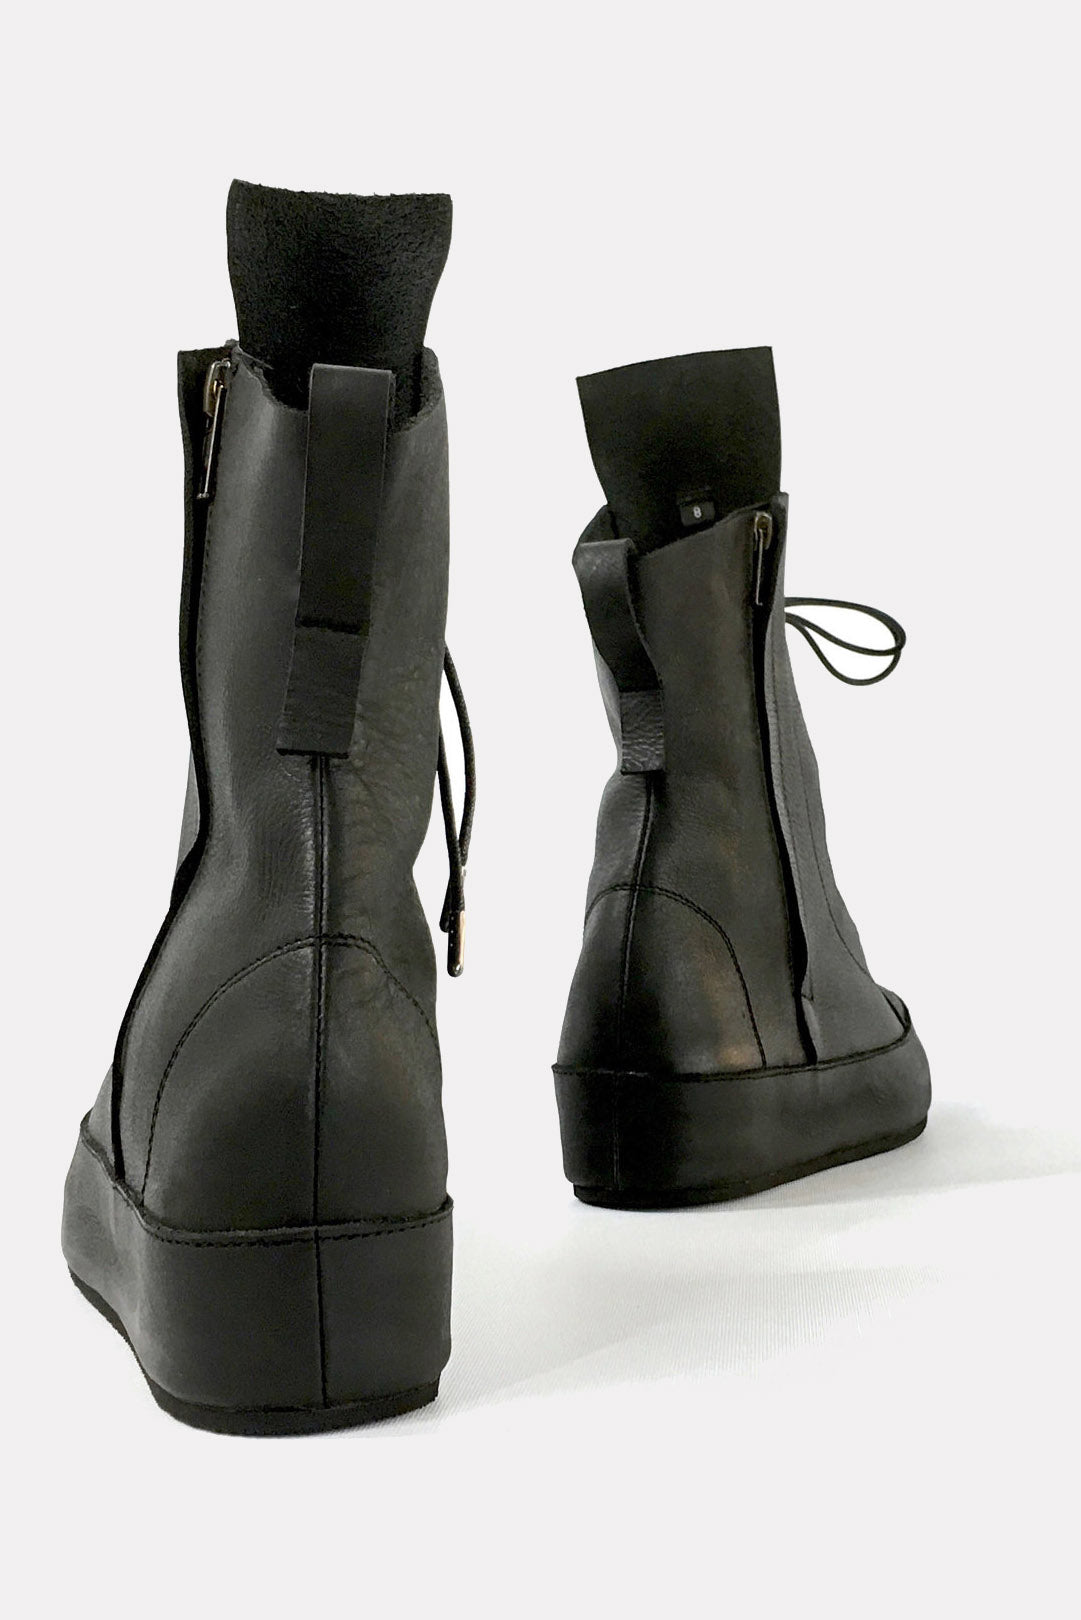 xpress boots in black